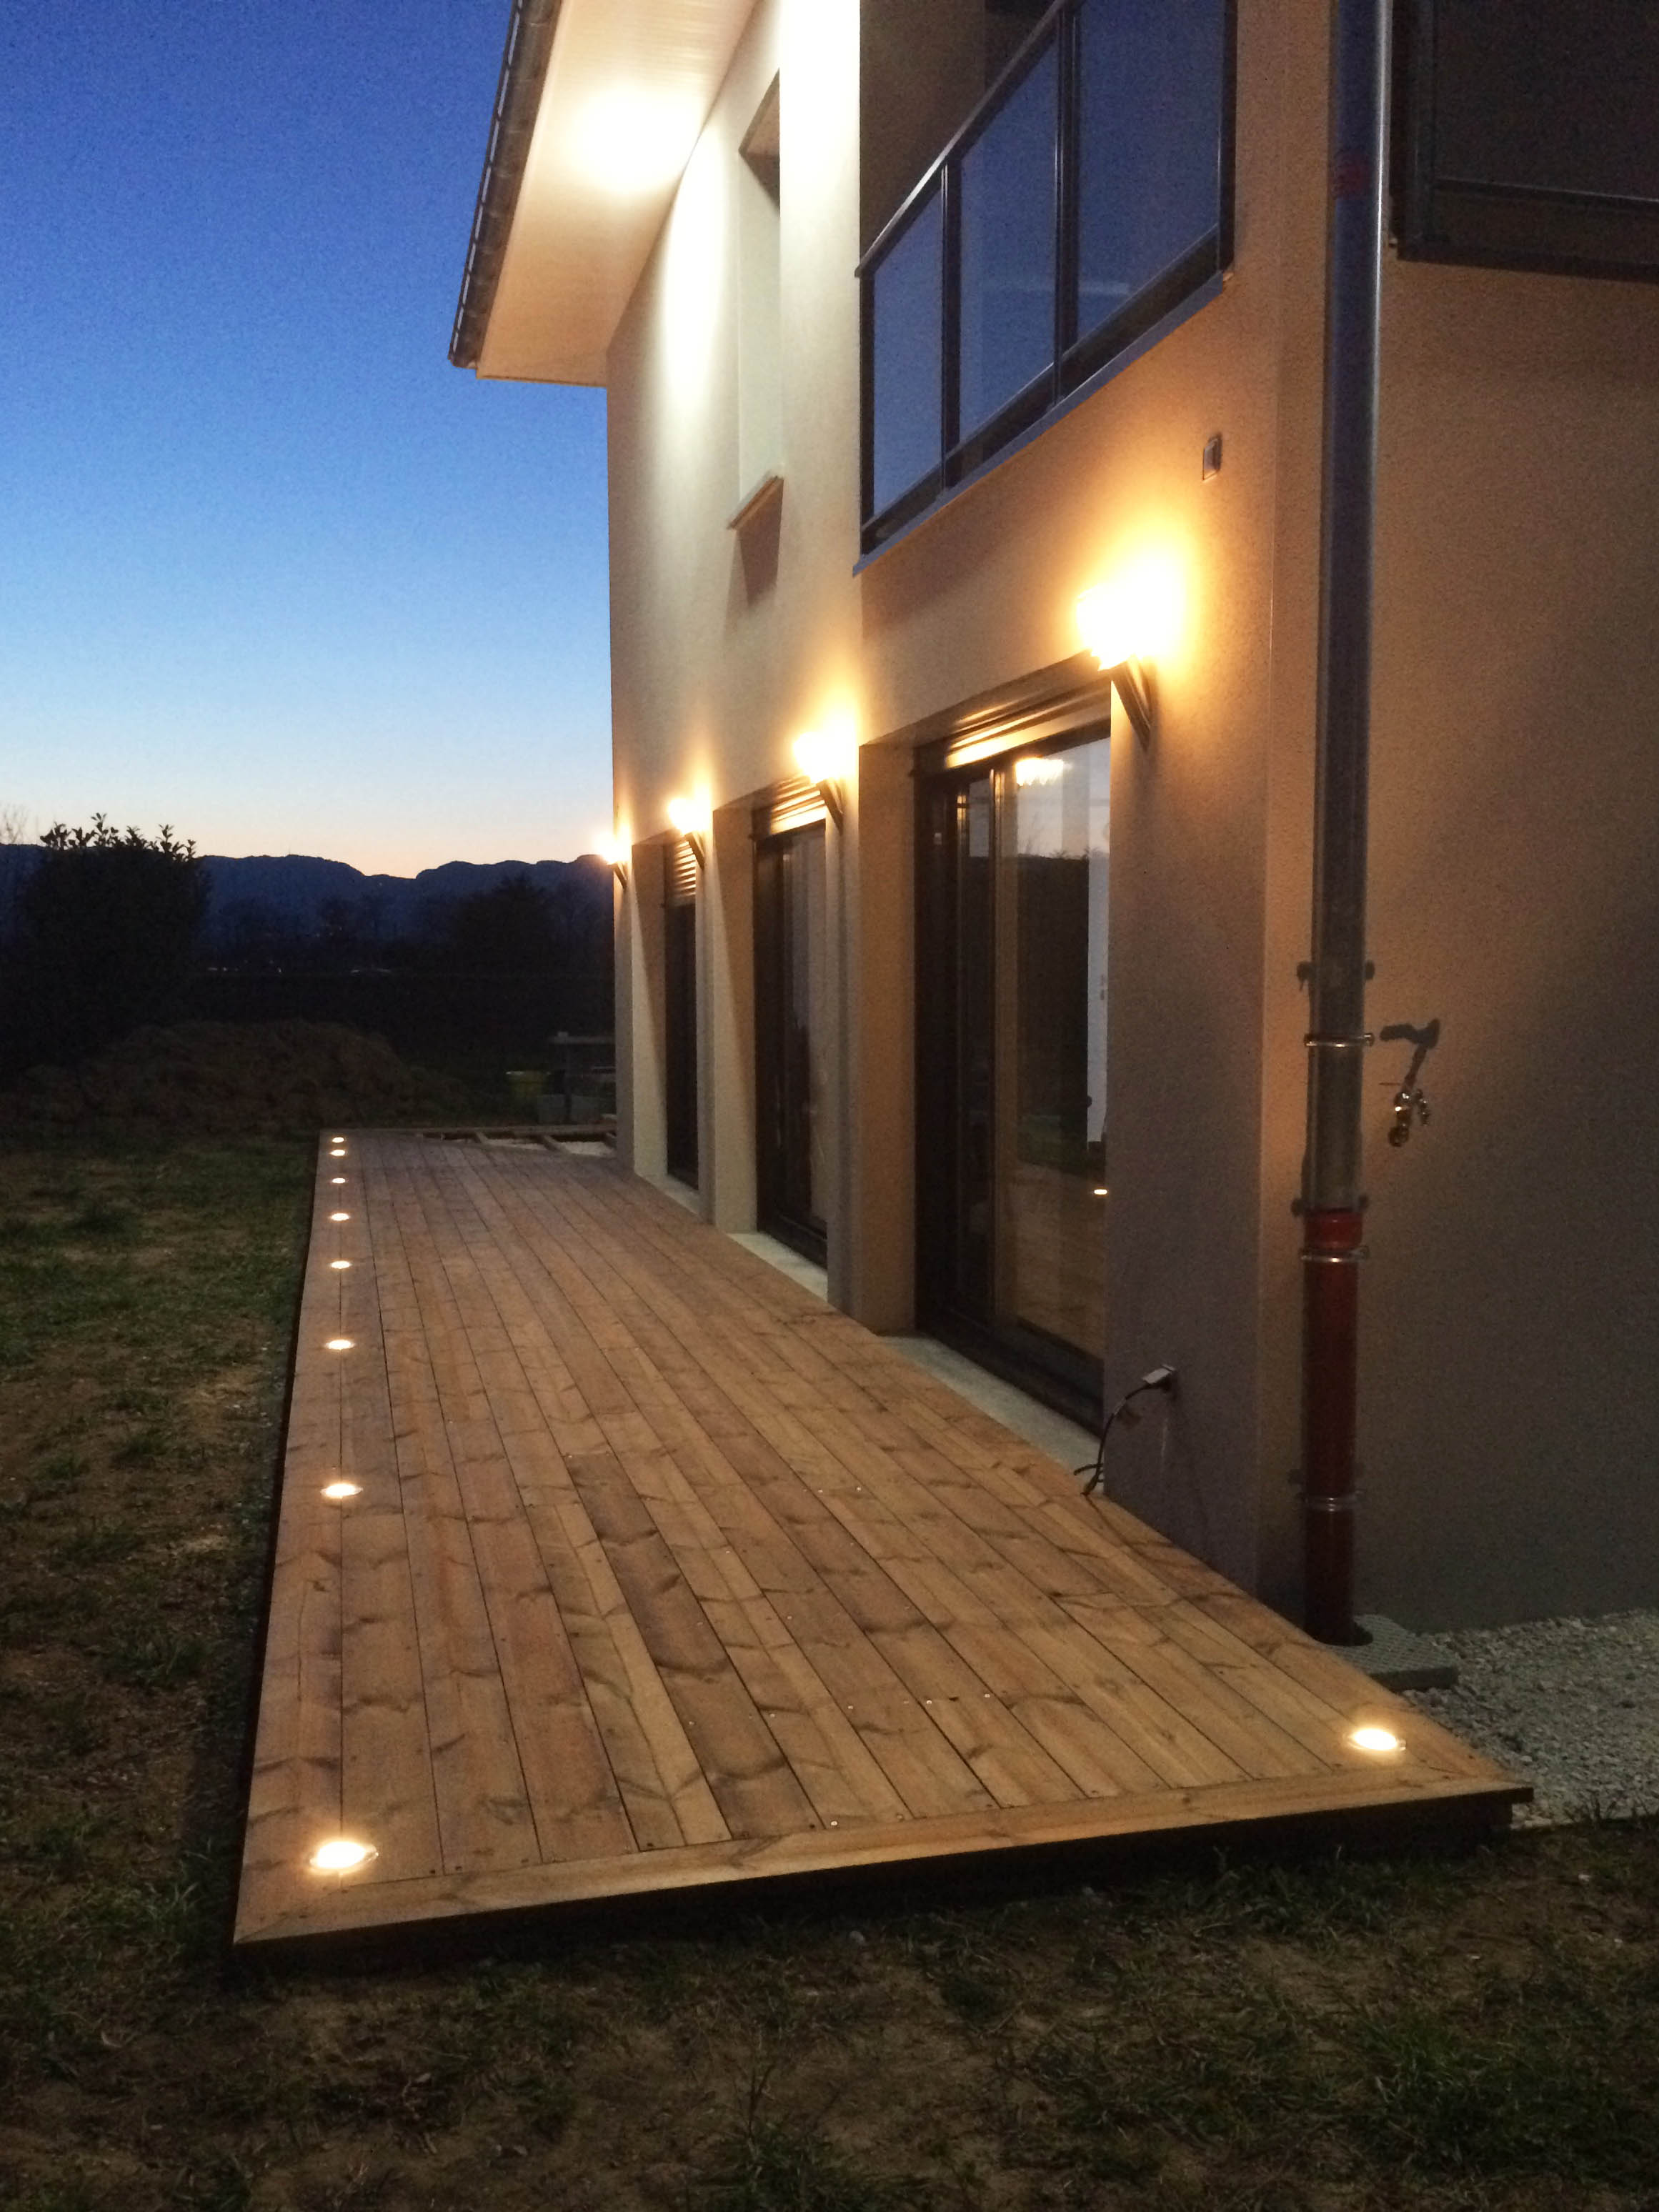 Eclairage terrasse bois light my place easy connect 65202